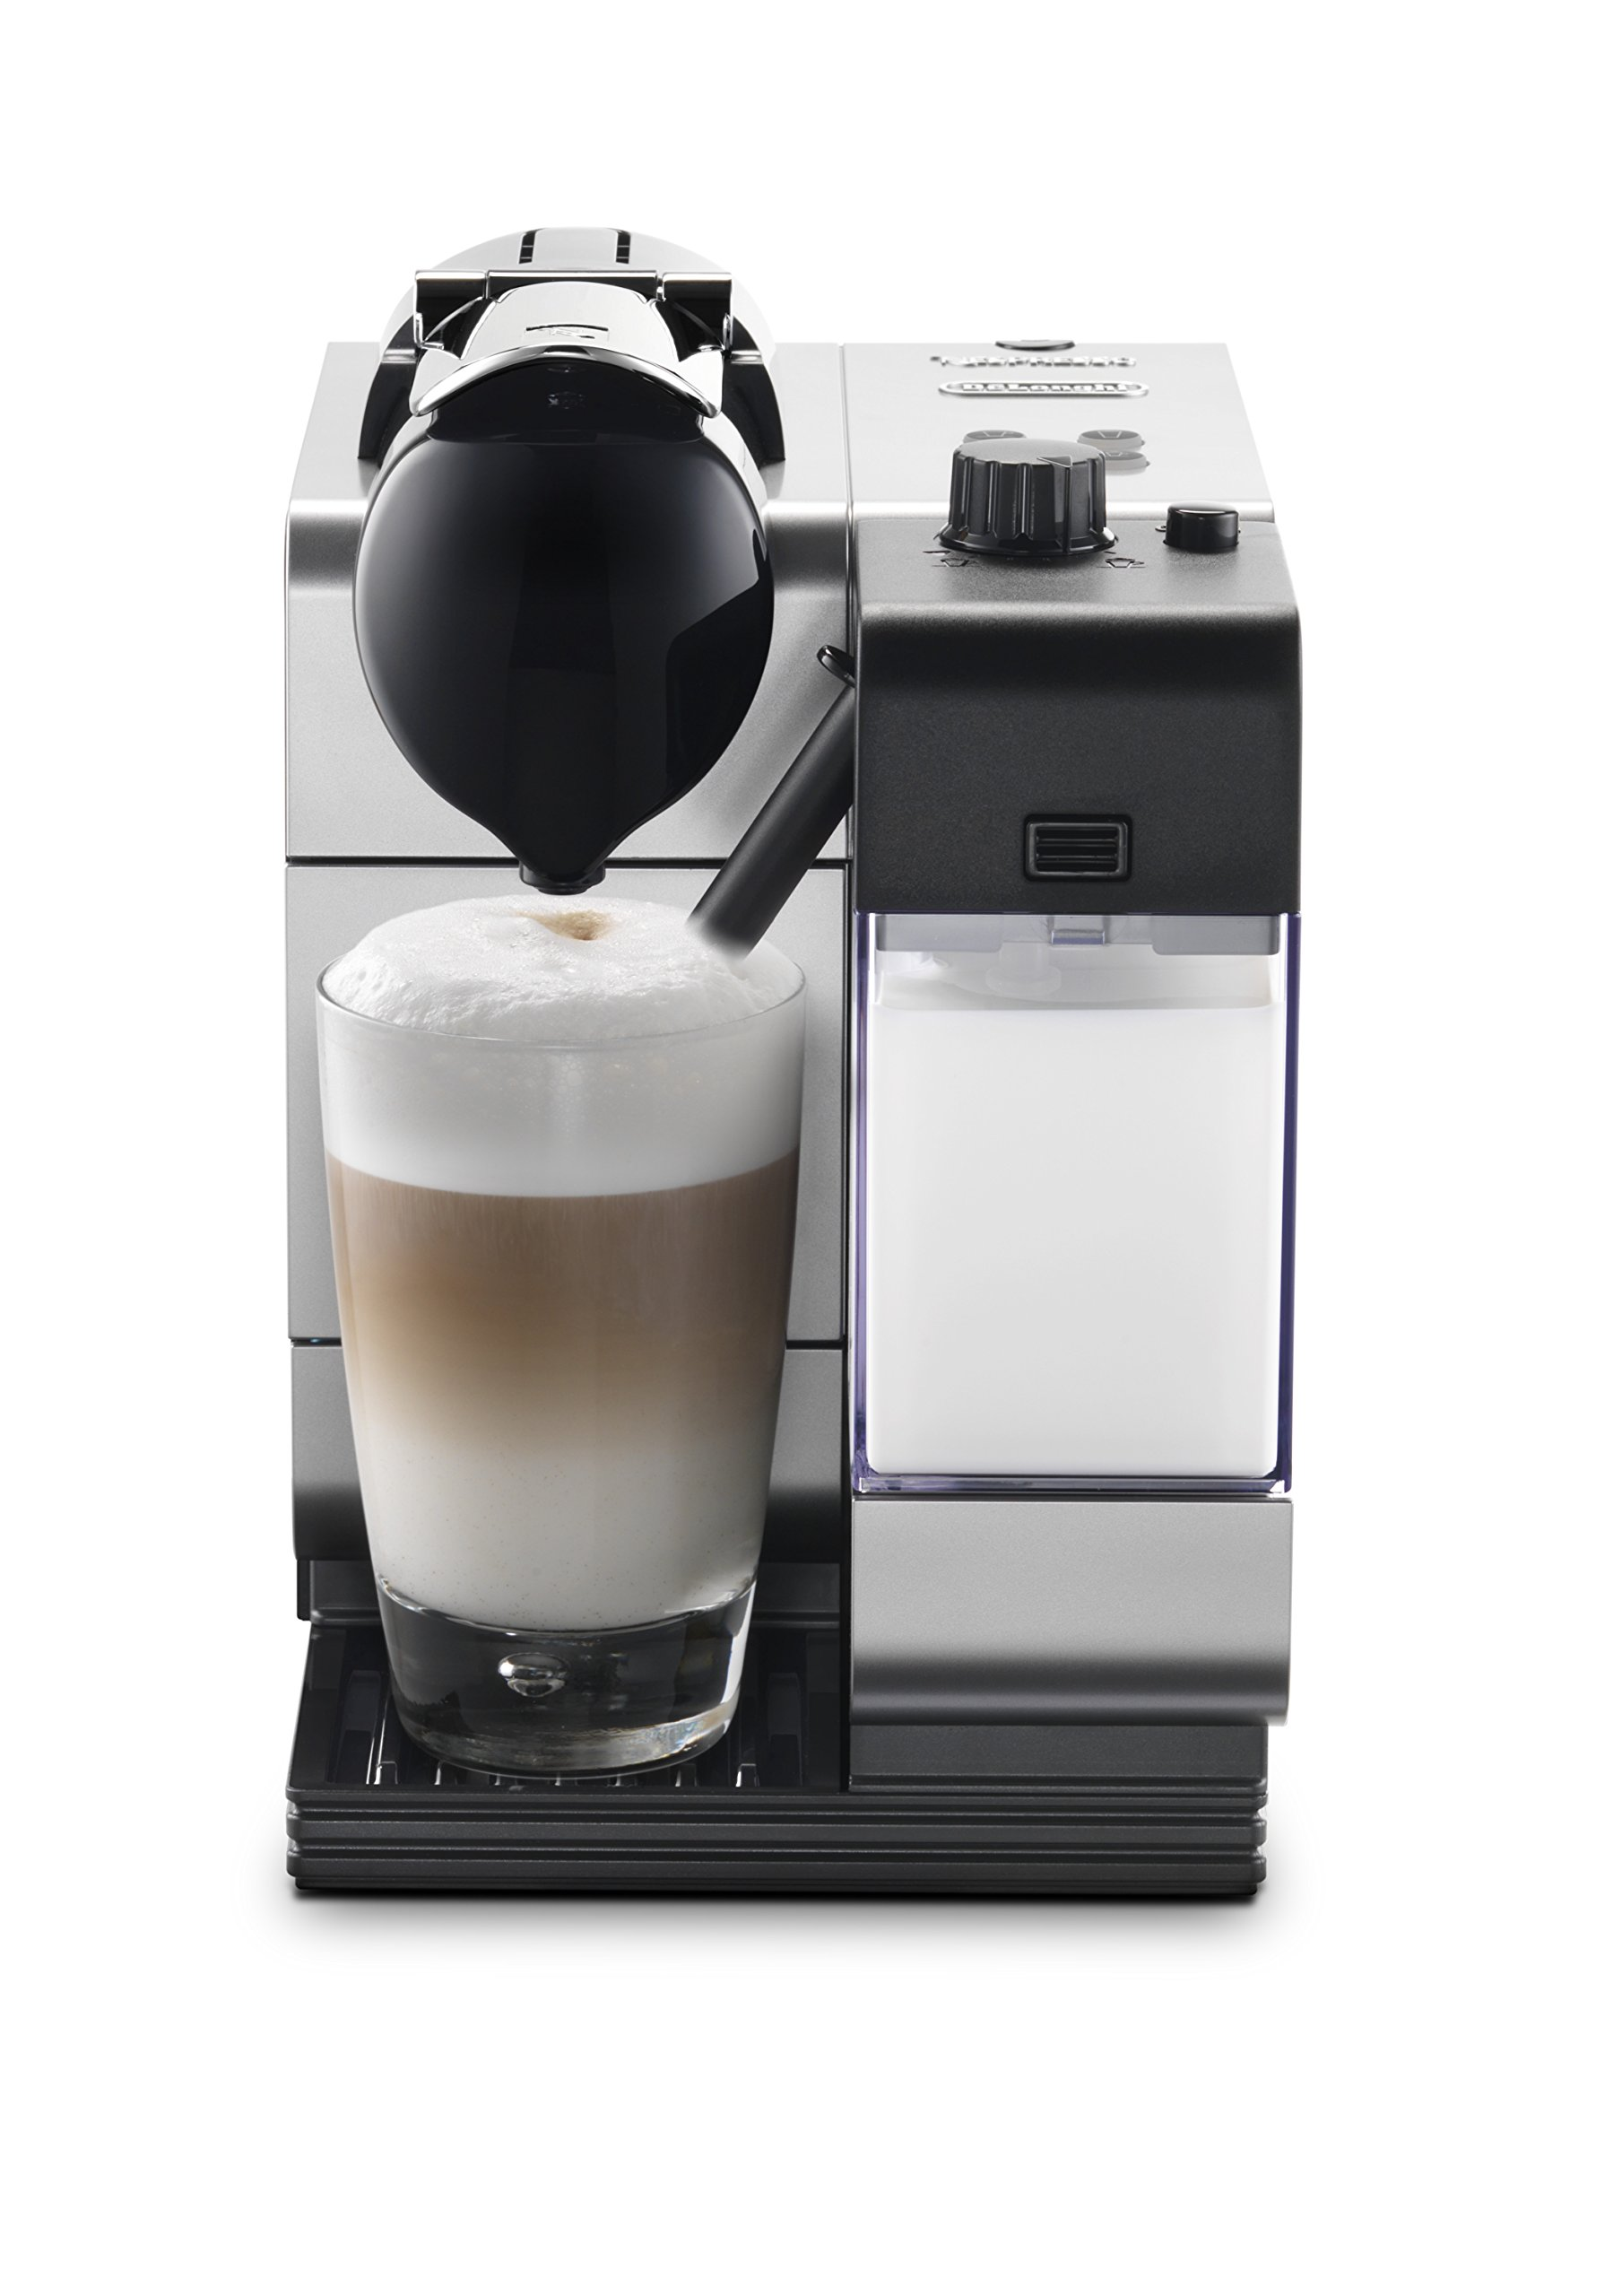 Nespresso Lattissima Plus Coffee and Espresso Machine by DeLonghi, Silver